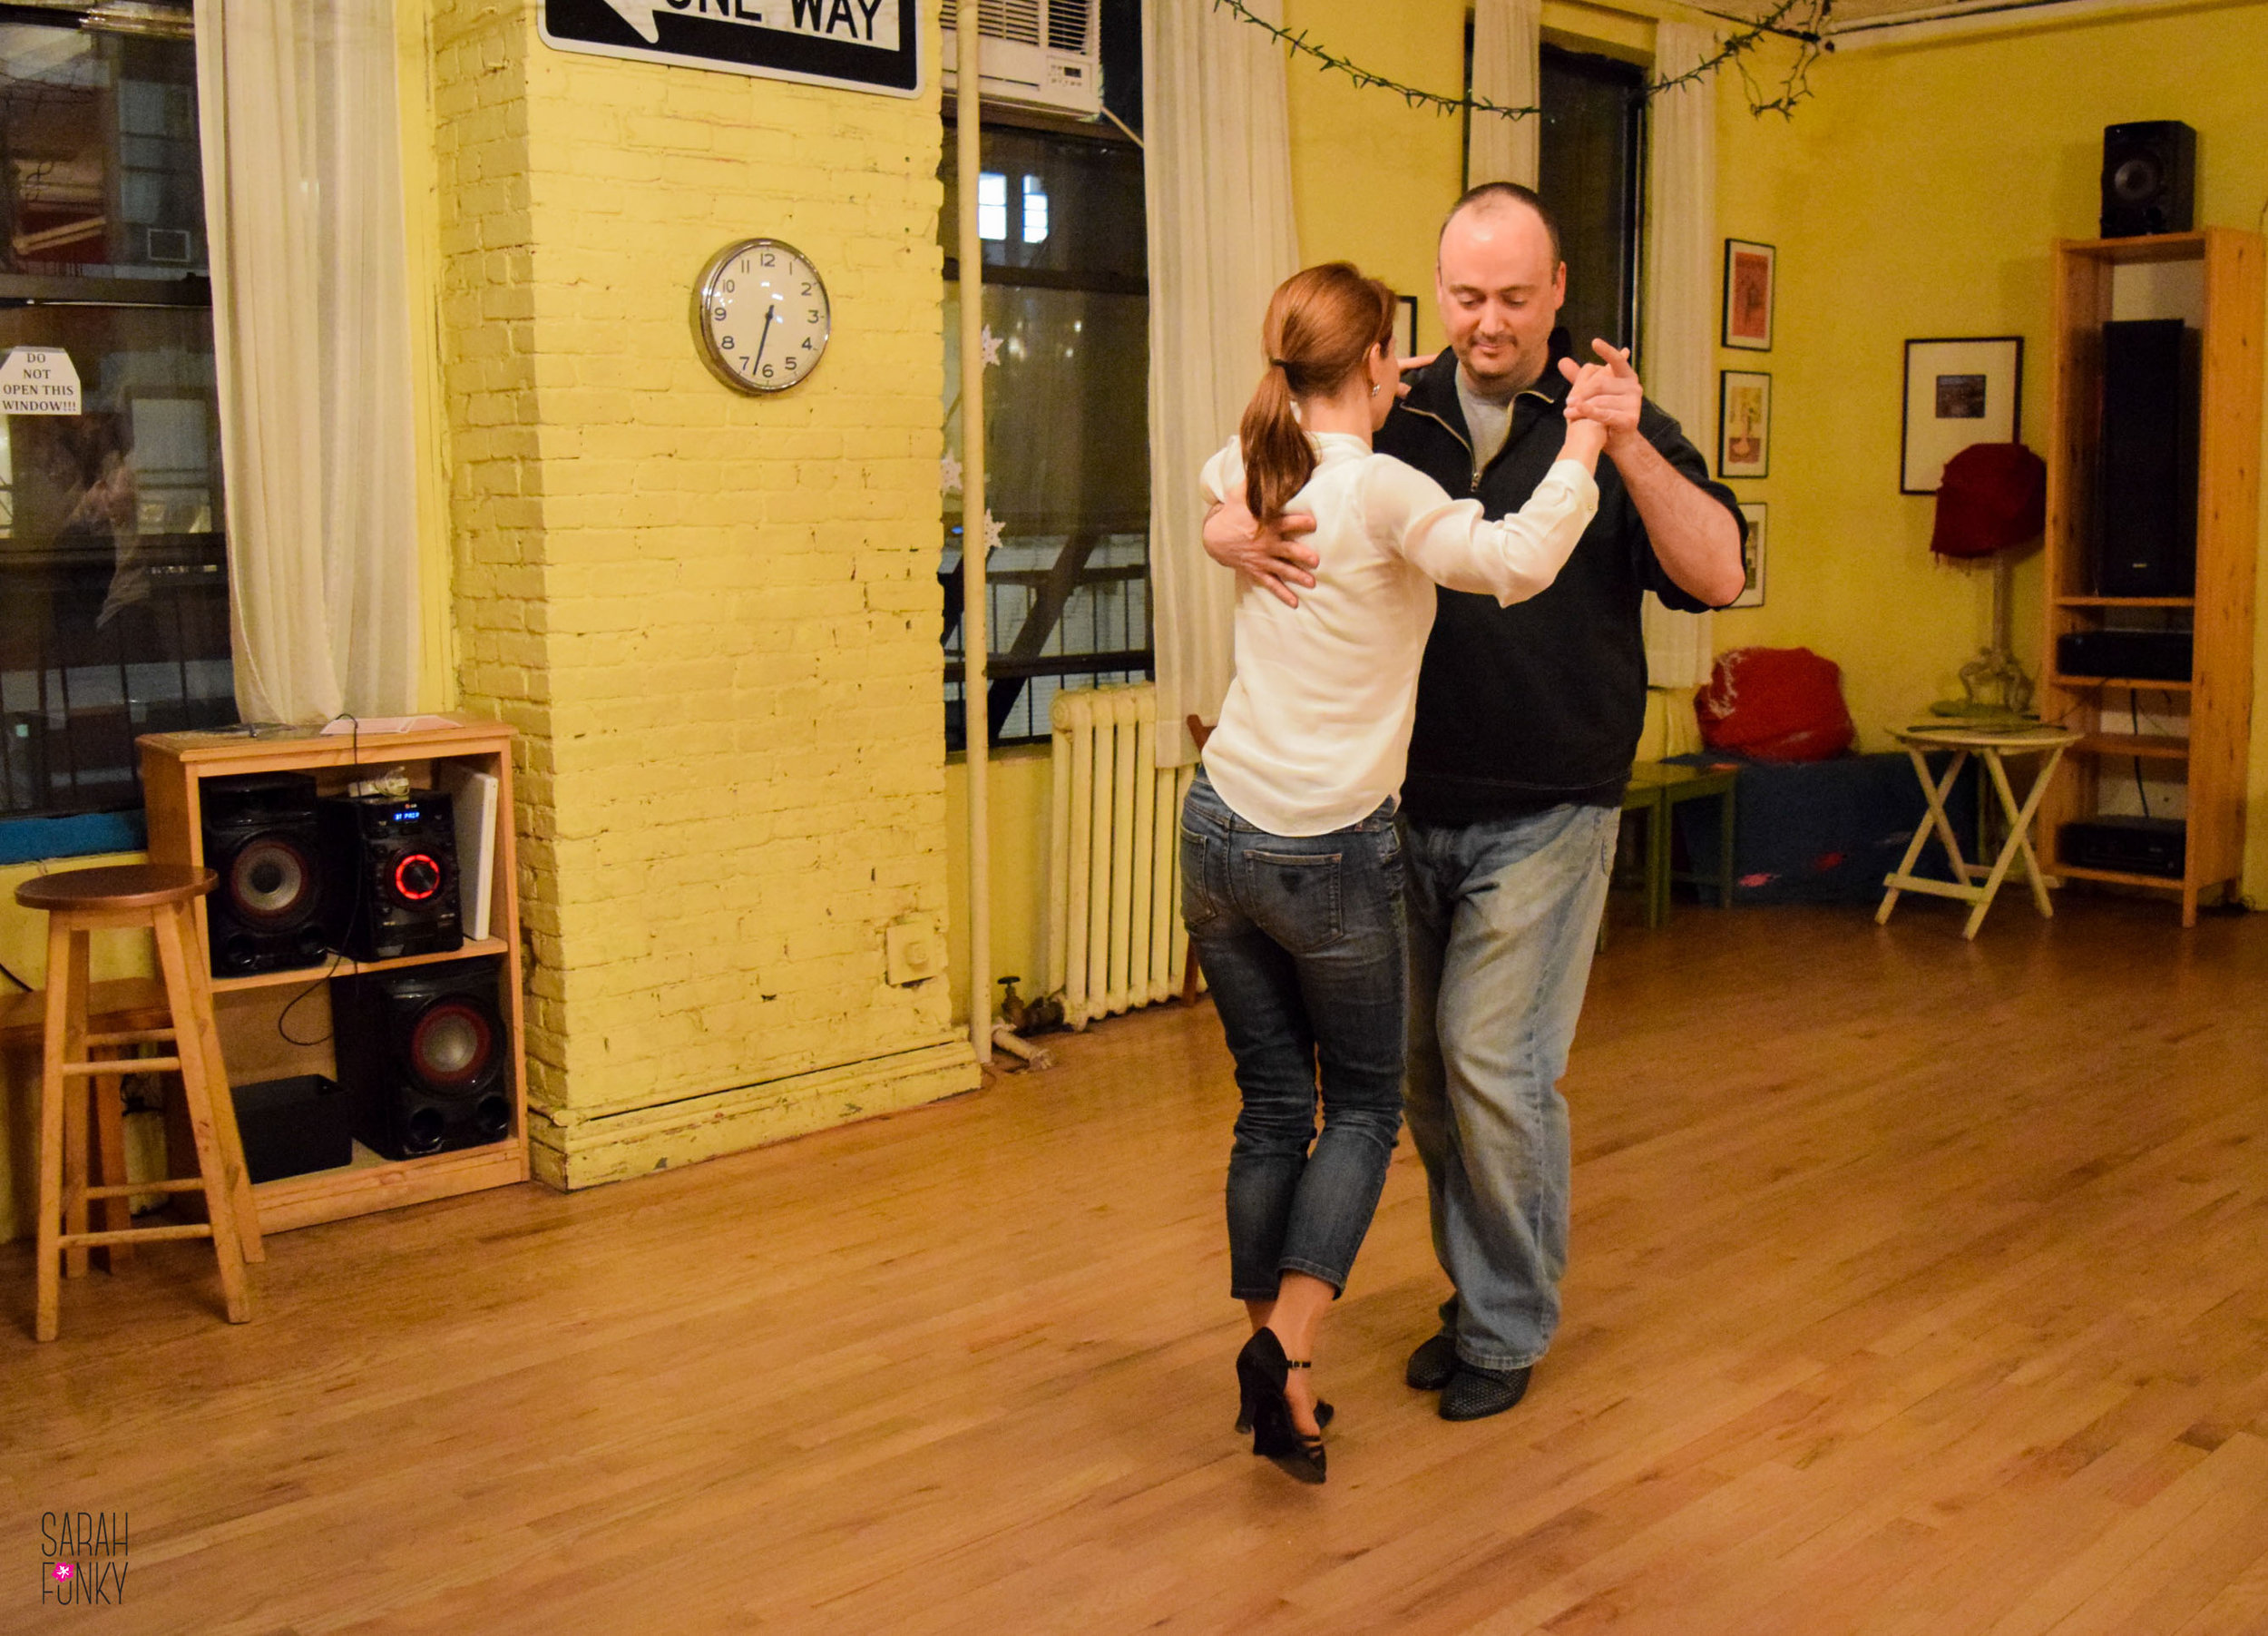 GET CARRIED AWAY WITH TANGO